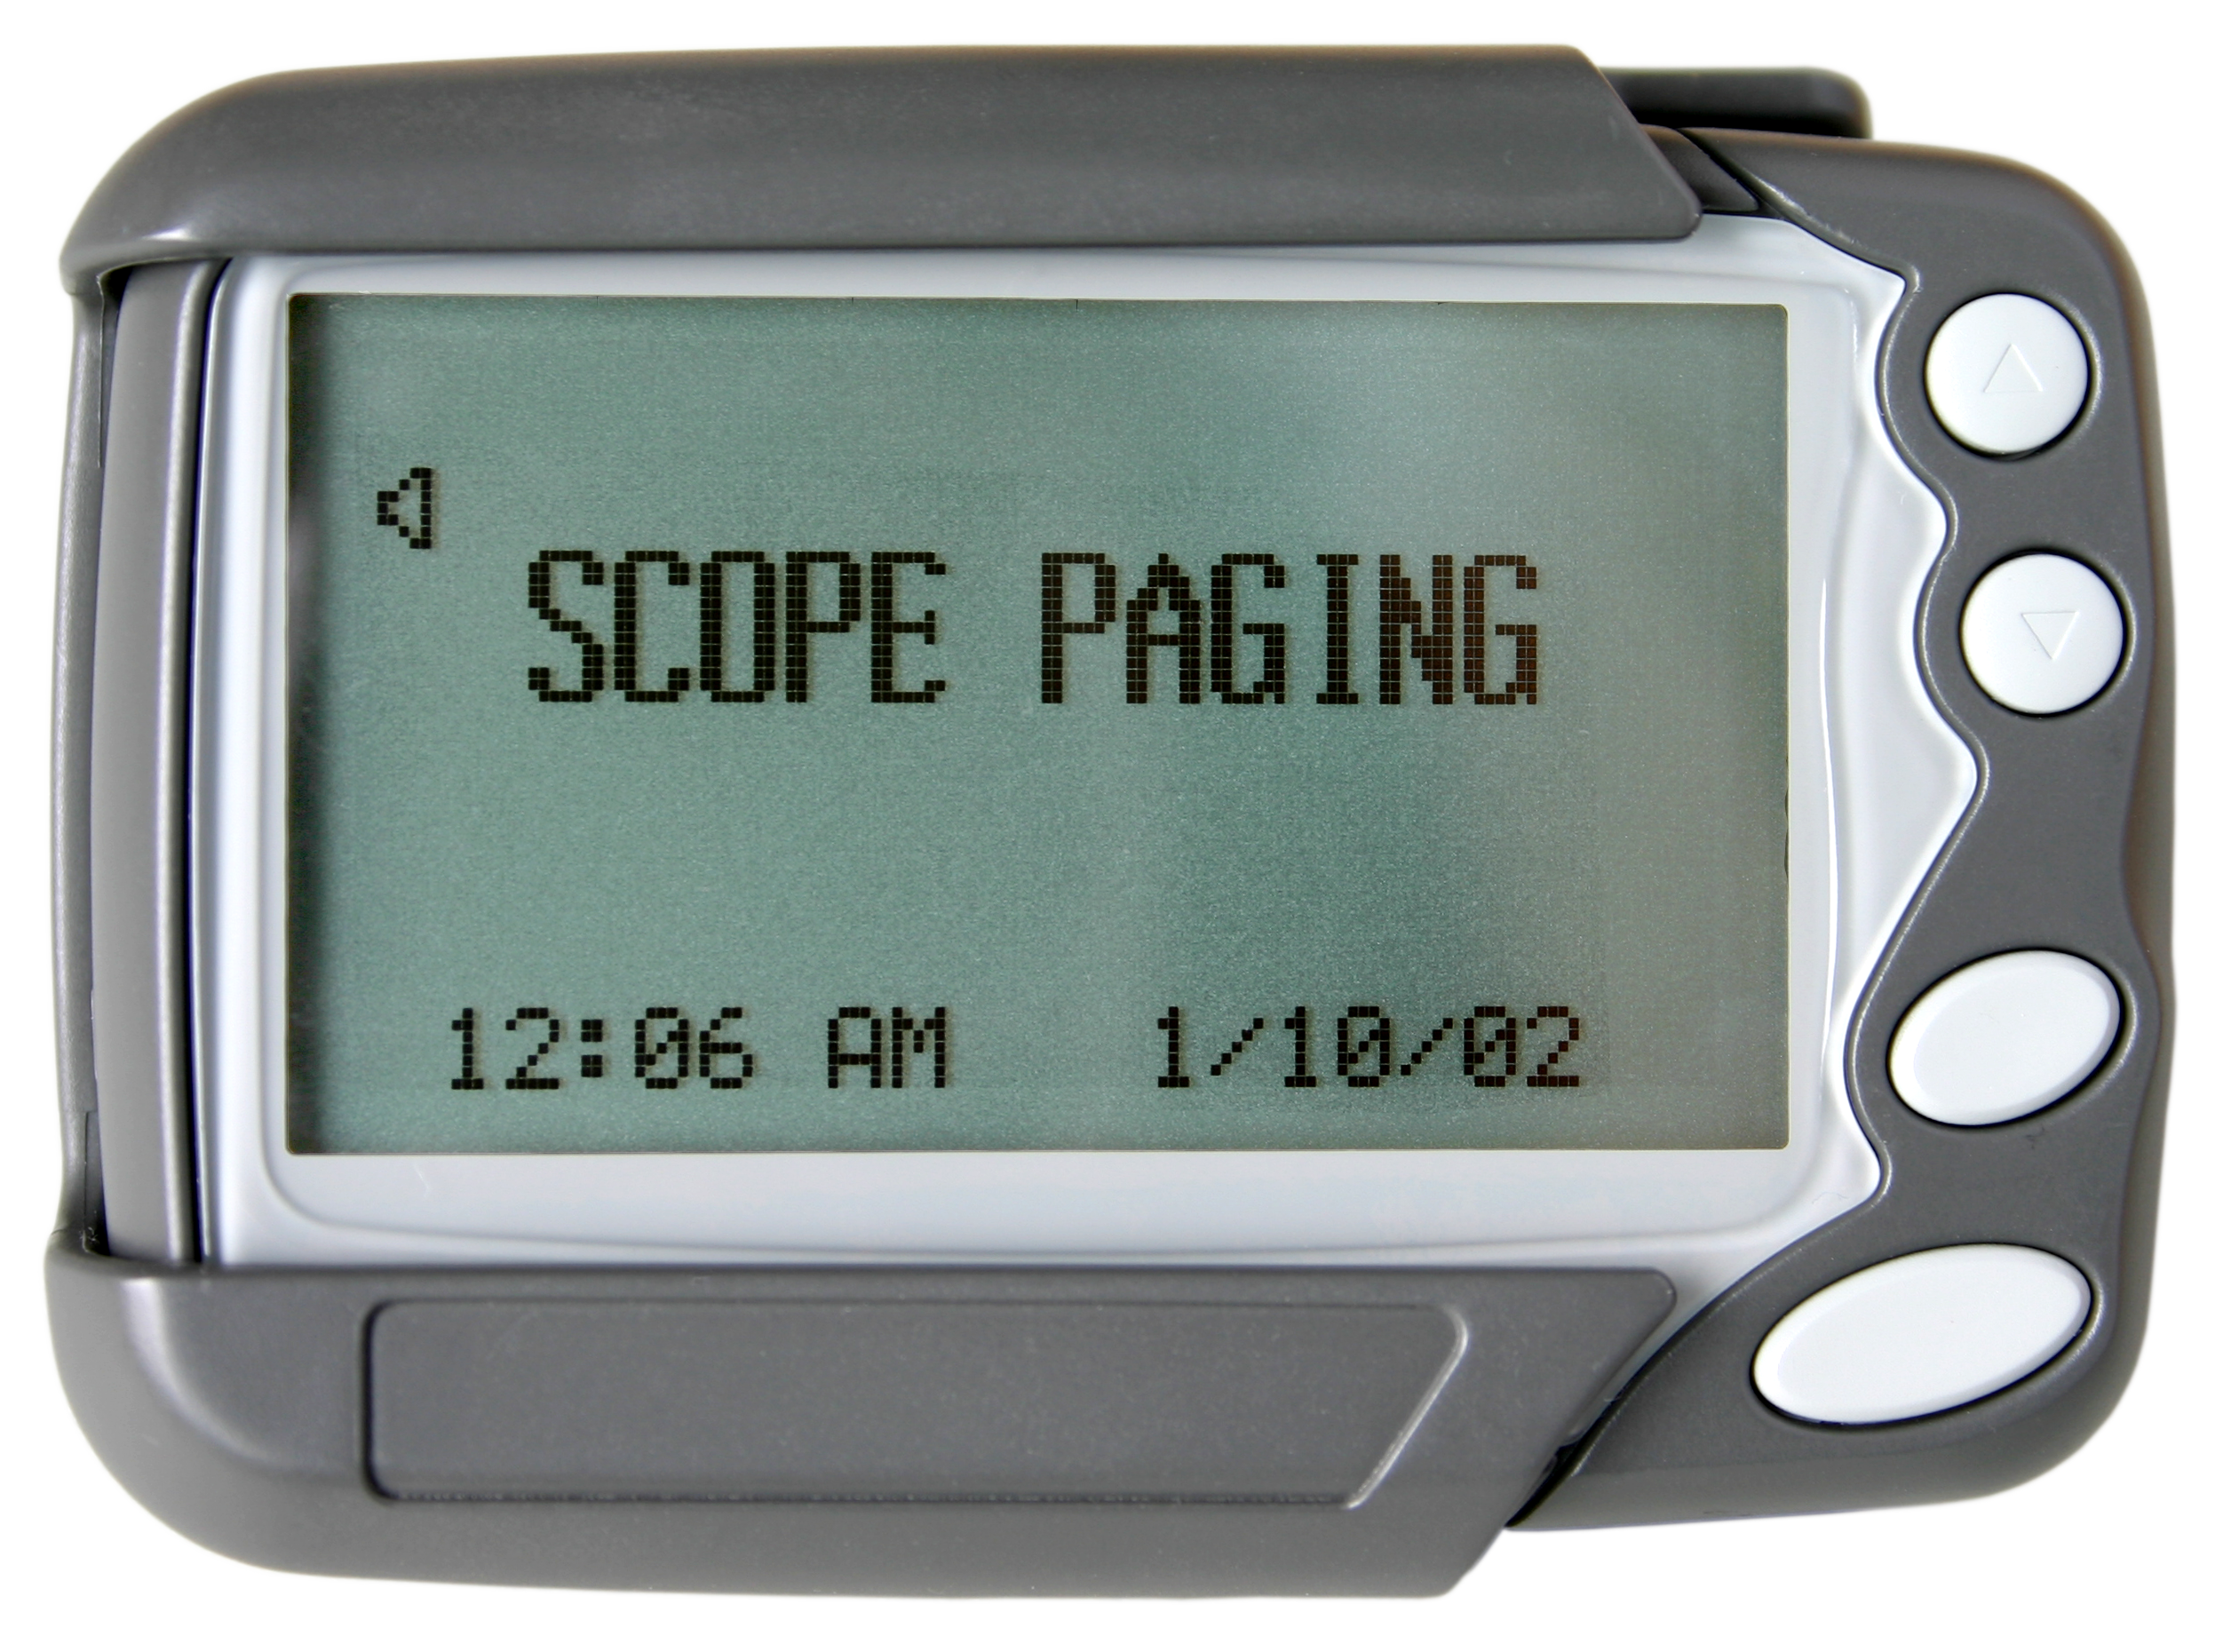 GEO Zoom pager